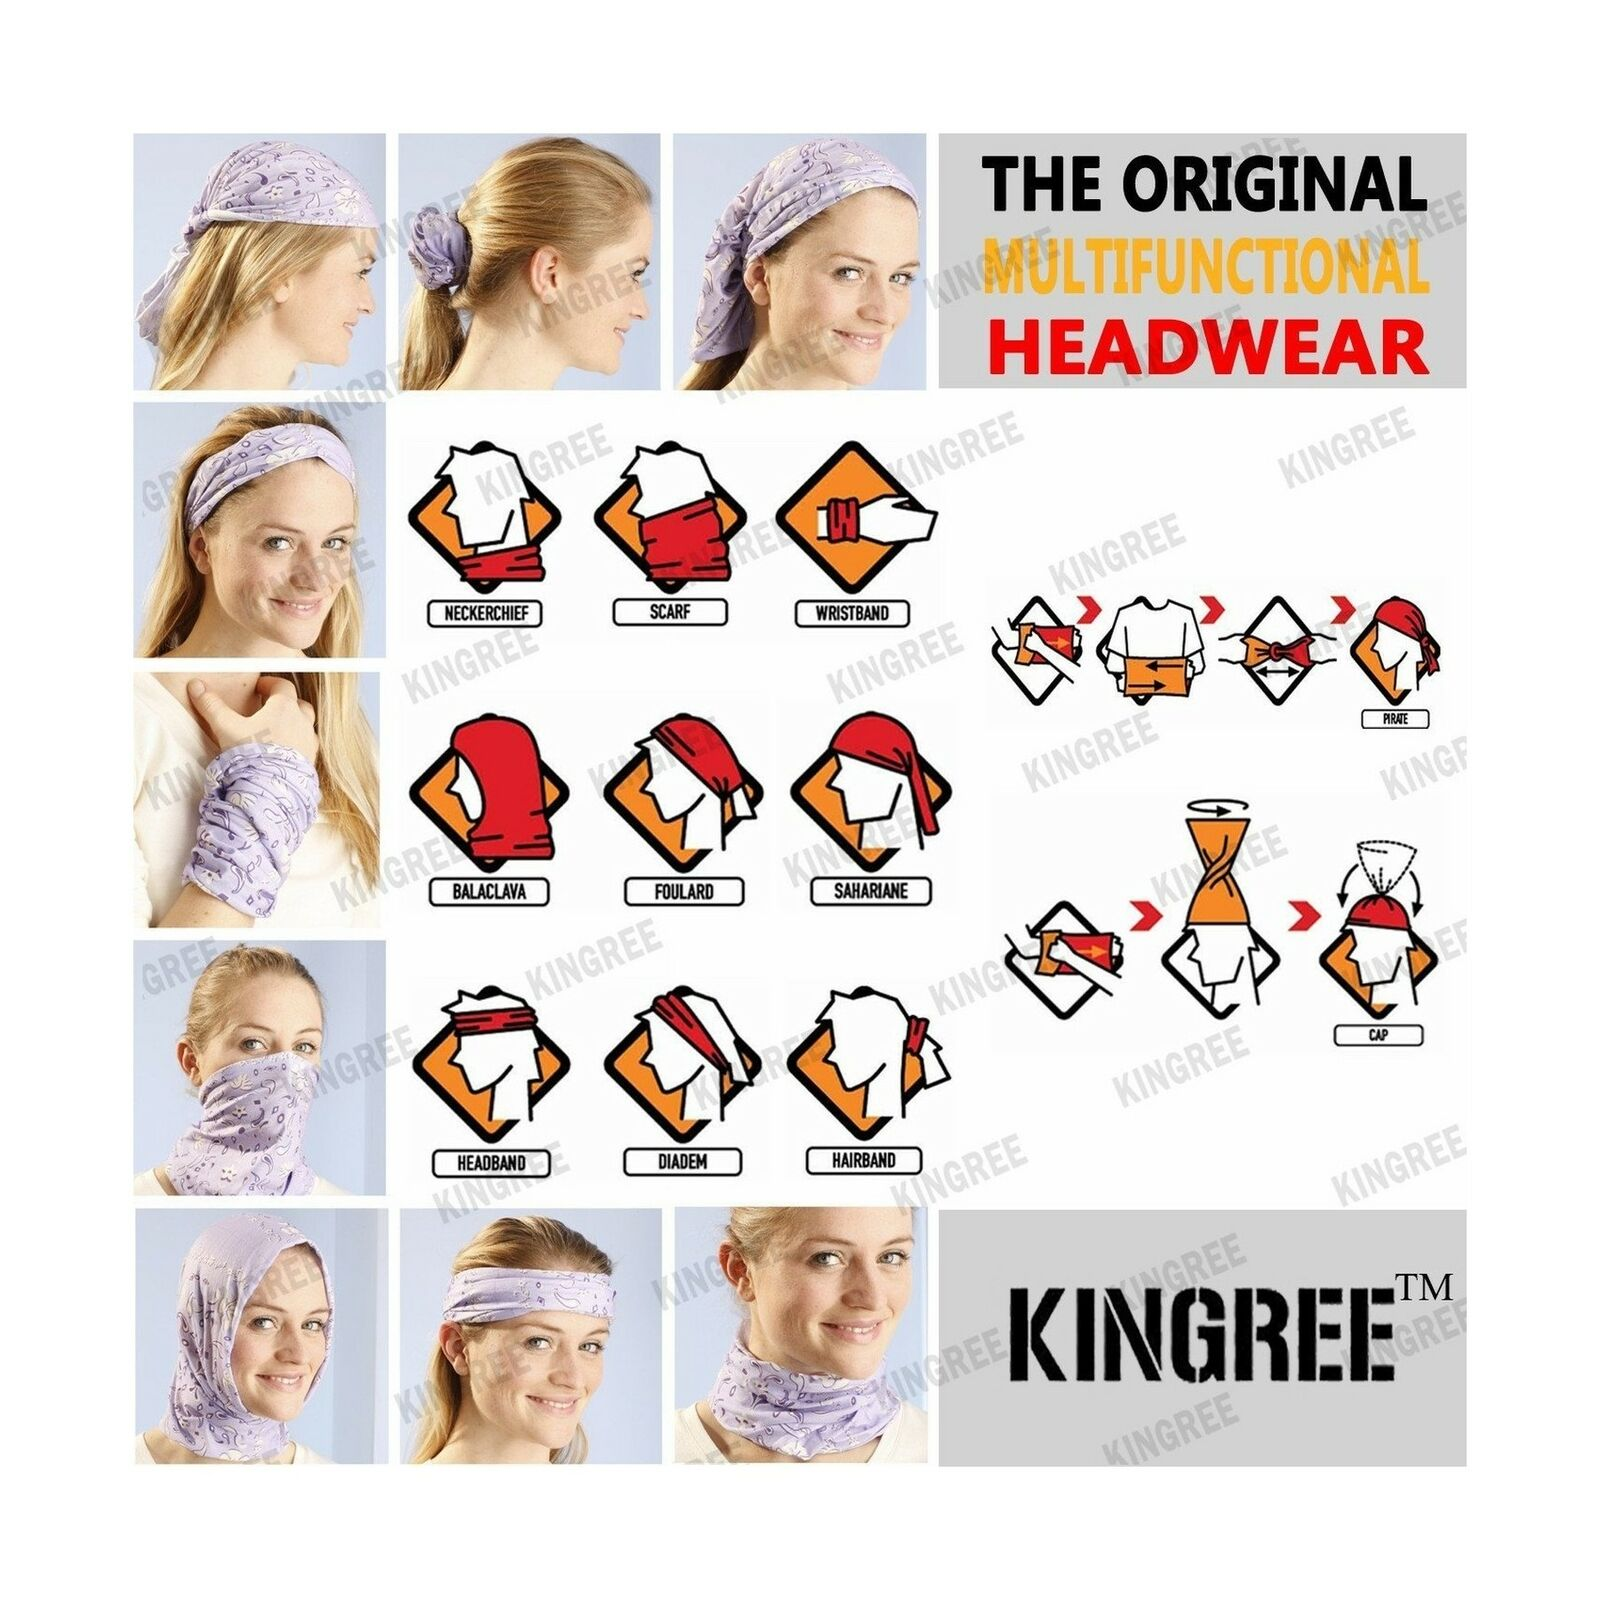 Headwear KINGREE 6PCS Outdoor Magic Scarf Mask Elastic Headbands Headscarves